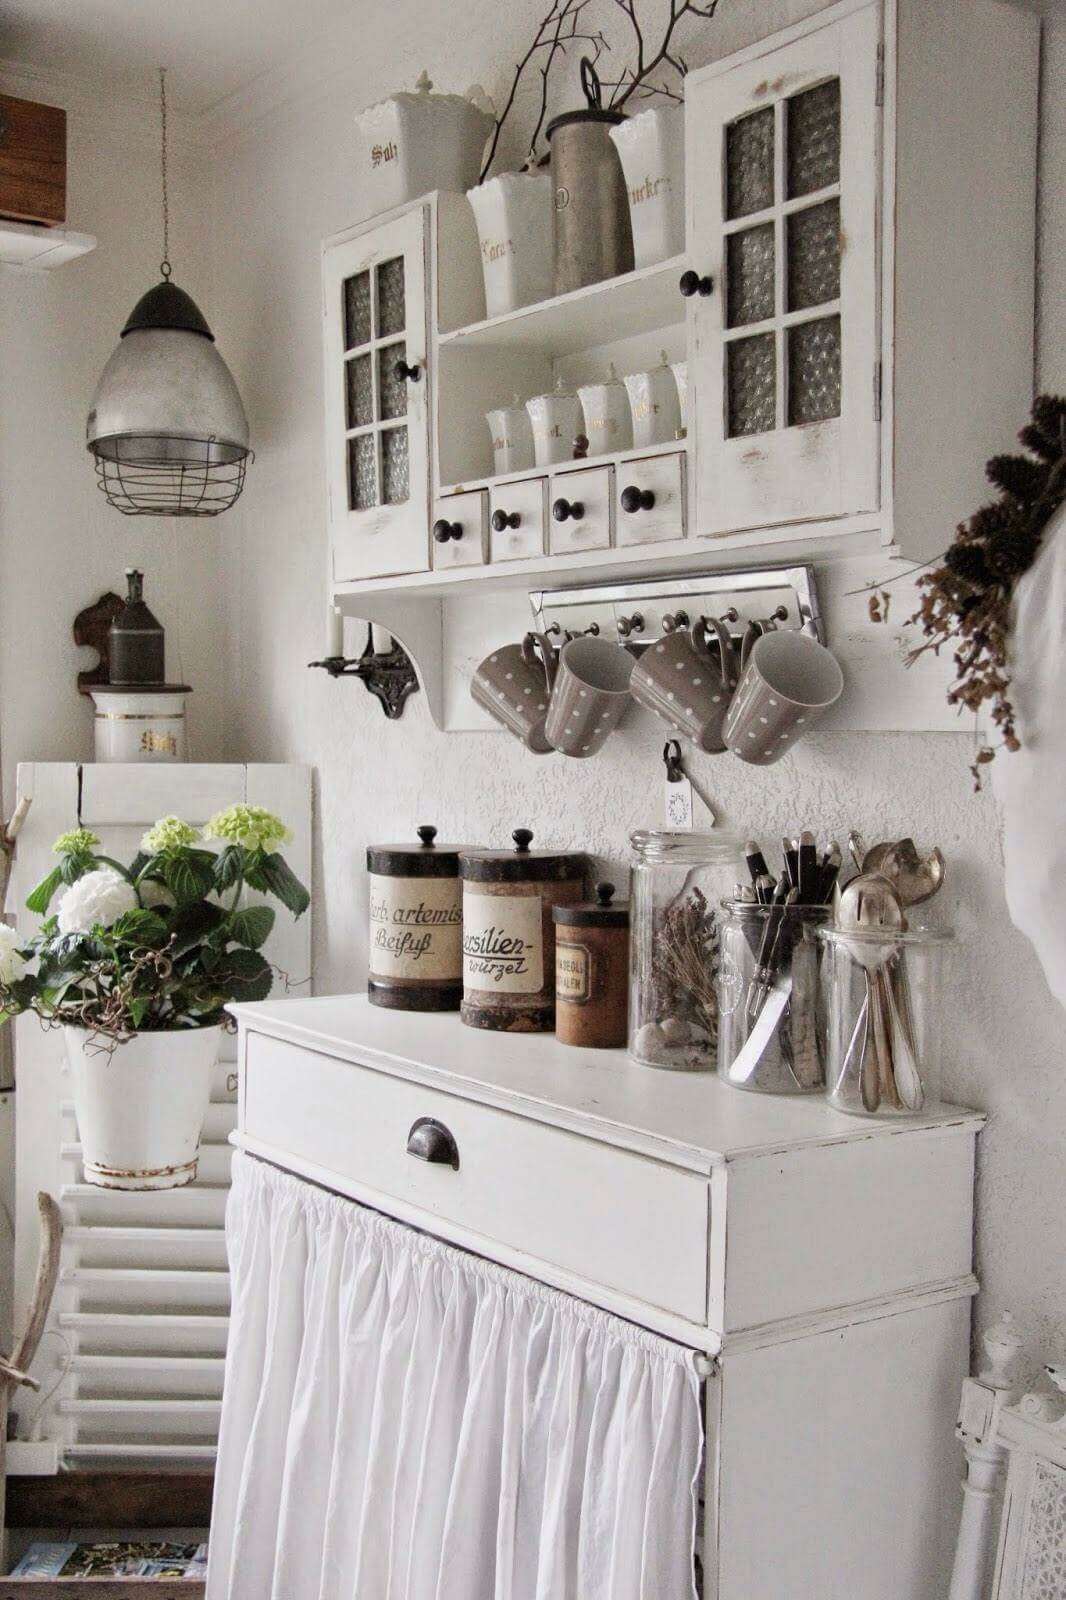 shabby chic kitchen ideas 29 best shabby chic kitchen decor ideas and designs for 2018 21641